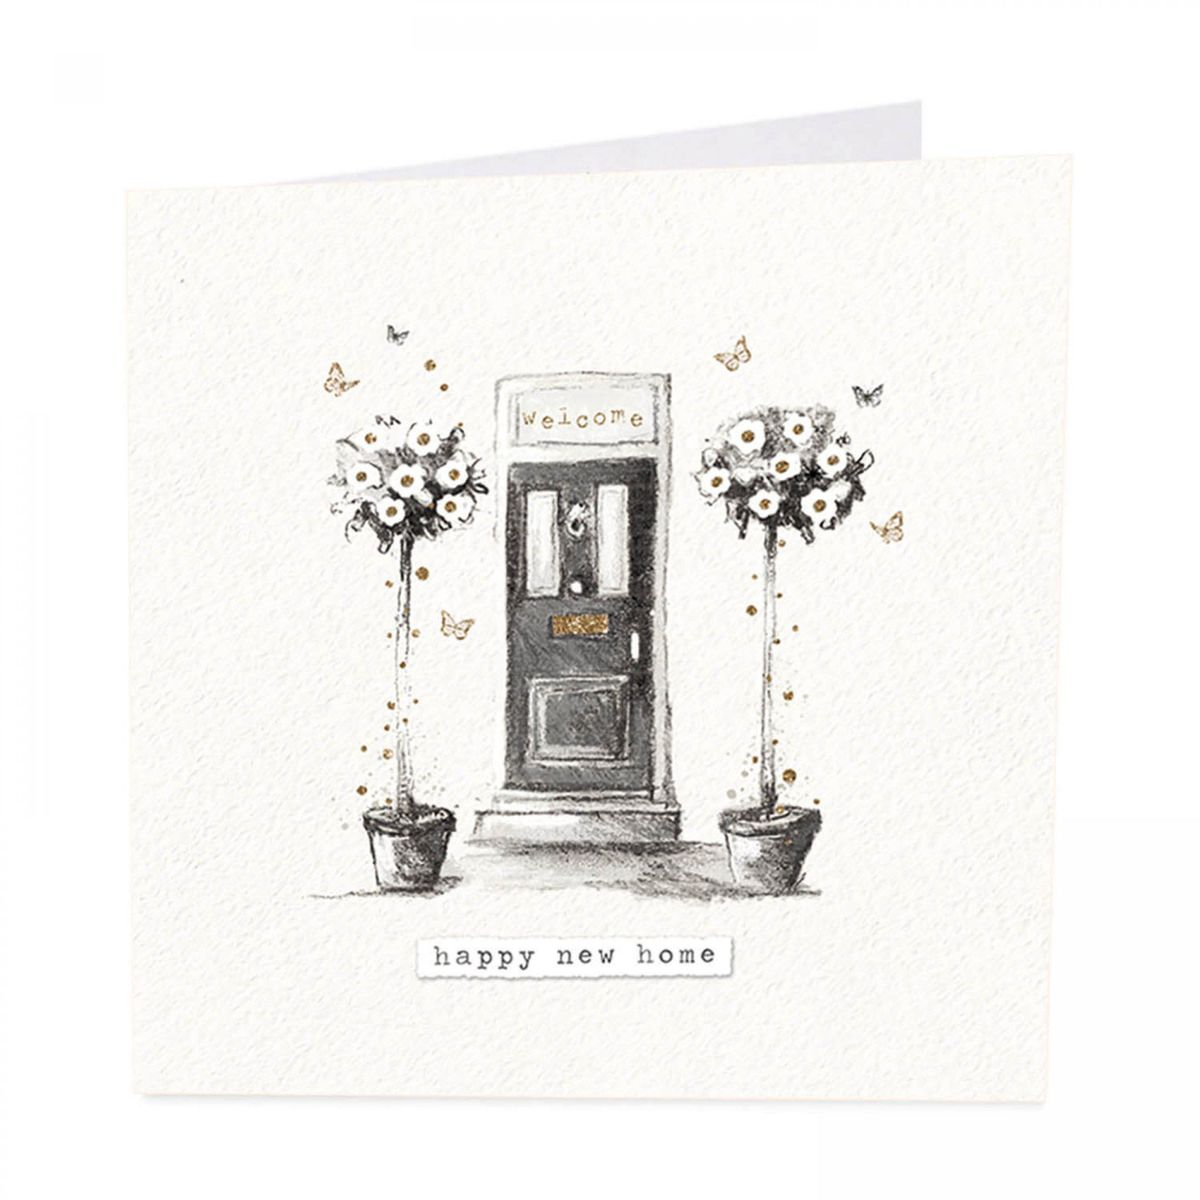 A Lovely New Home Card